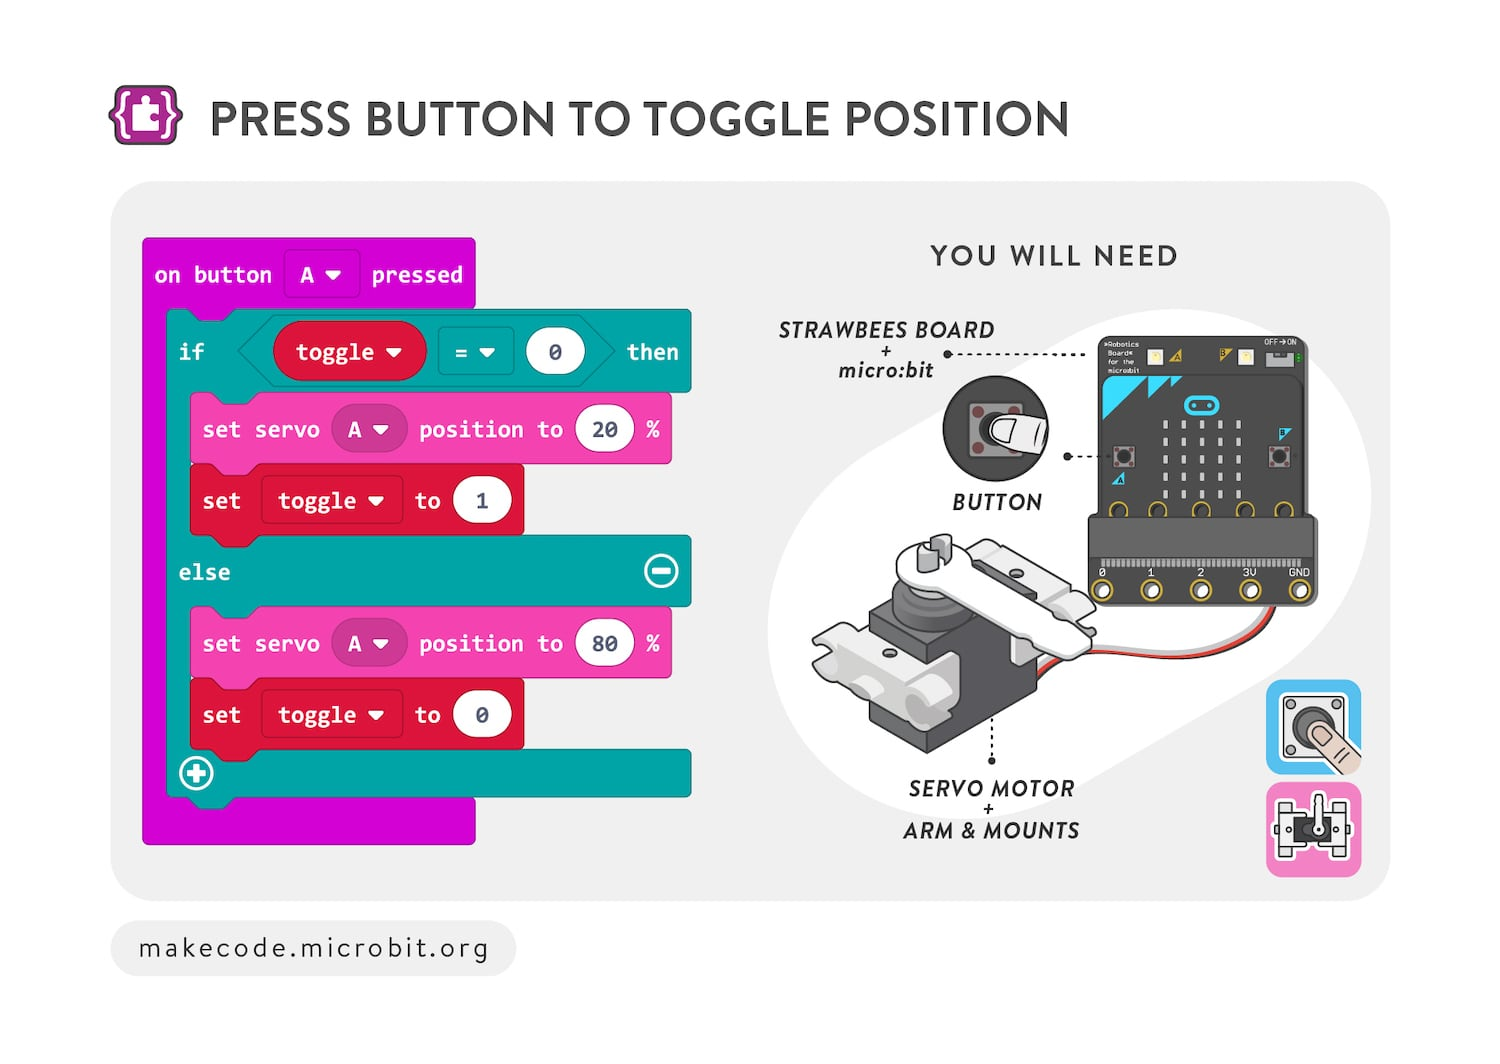 Press button to toggle position